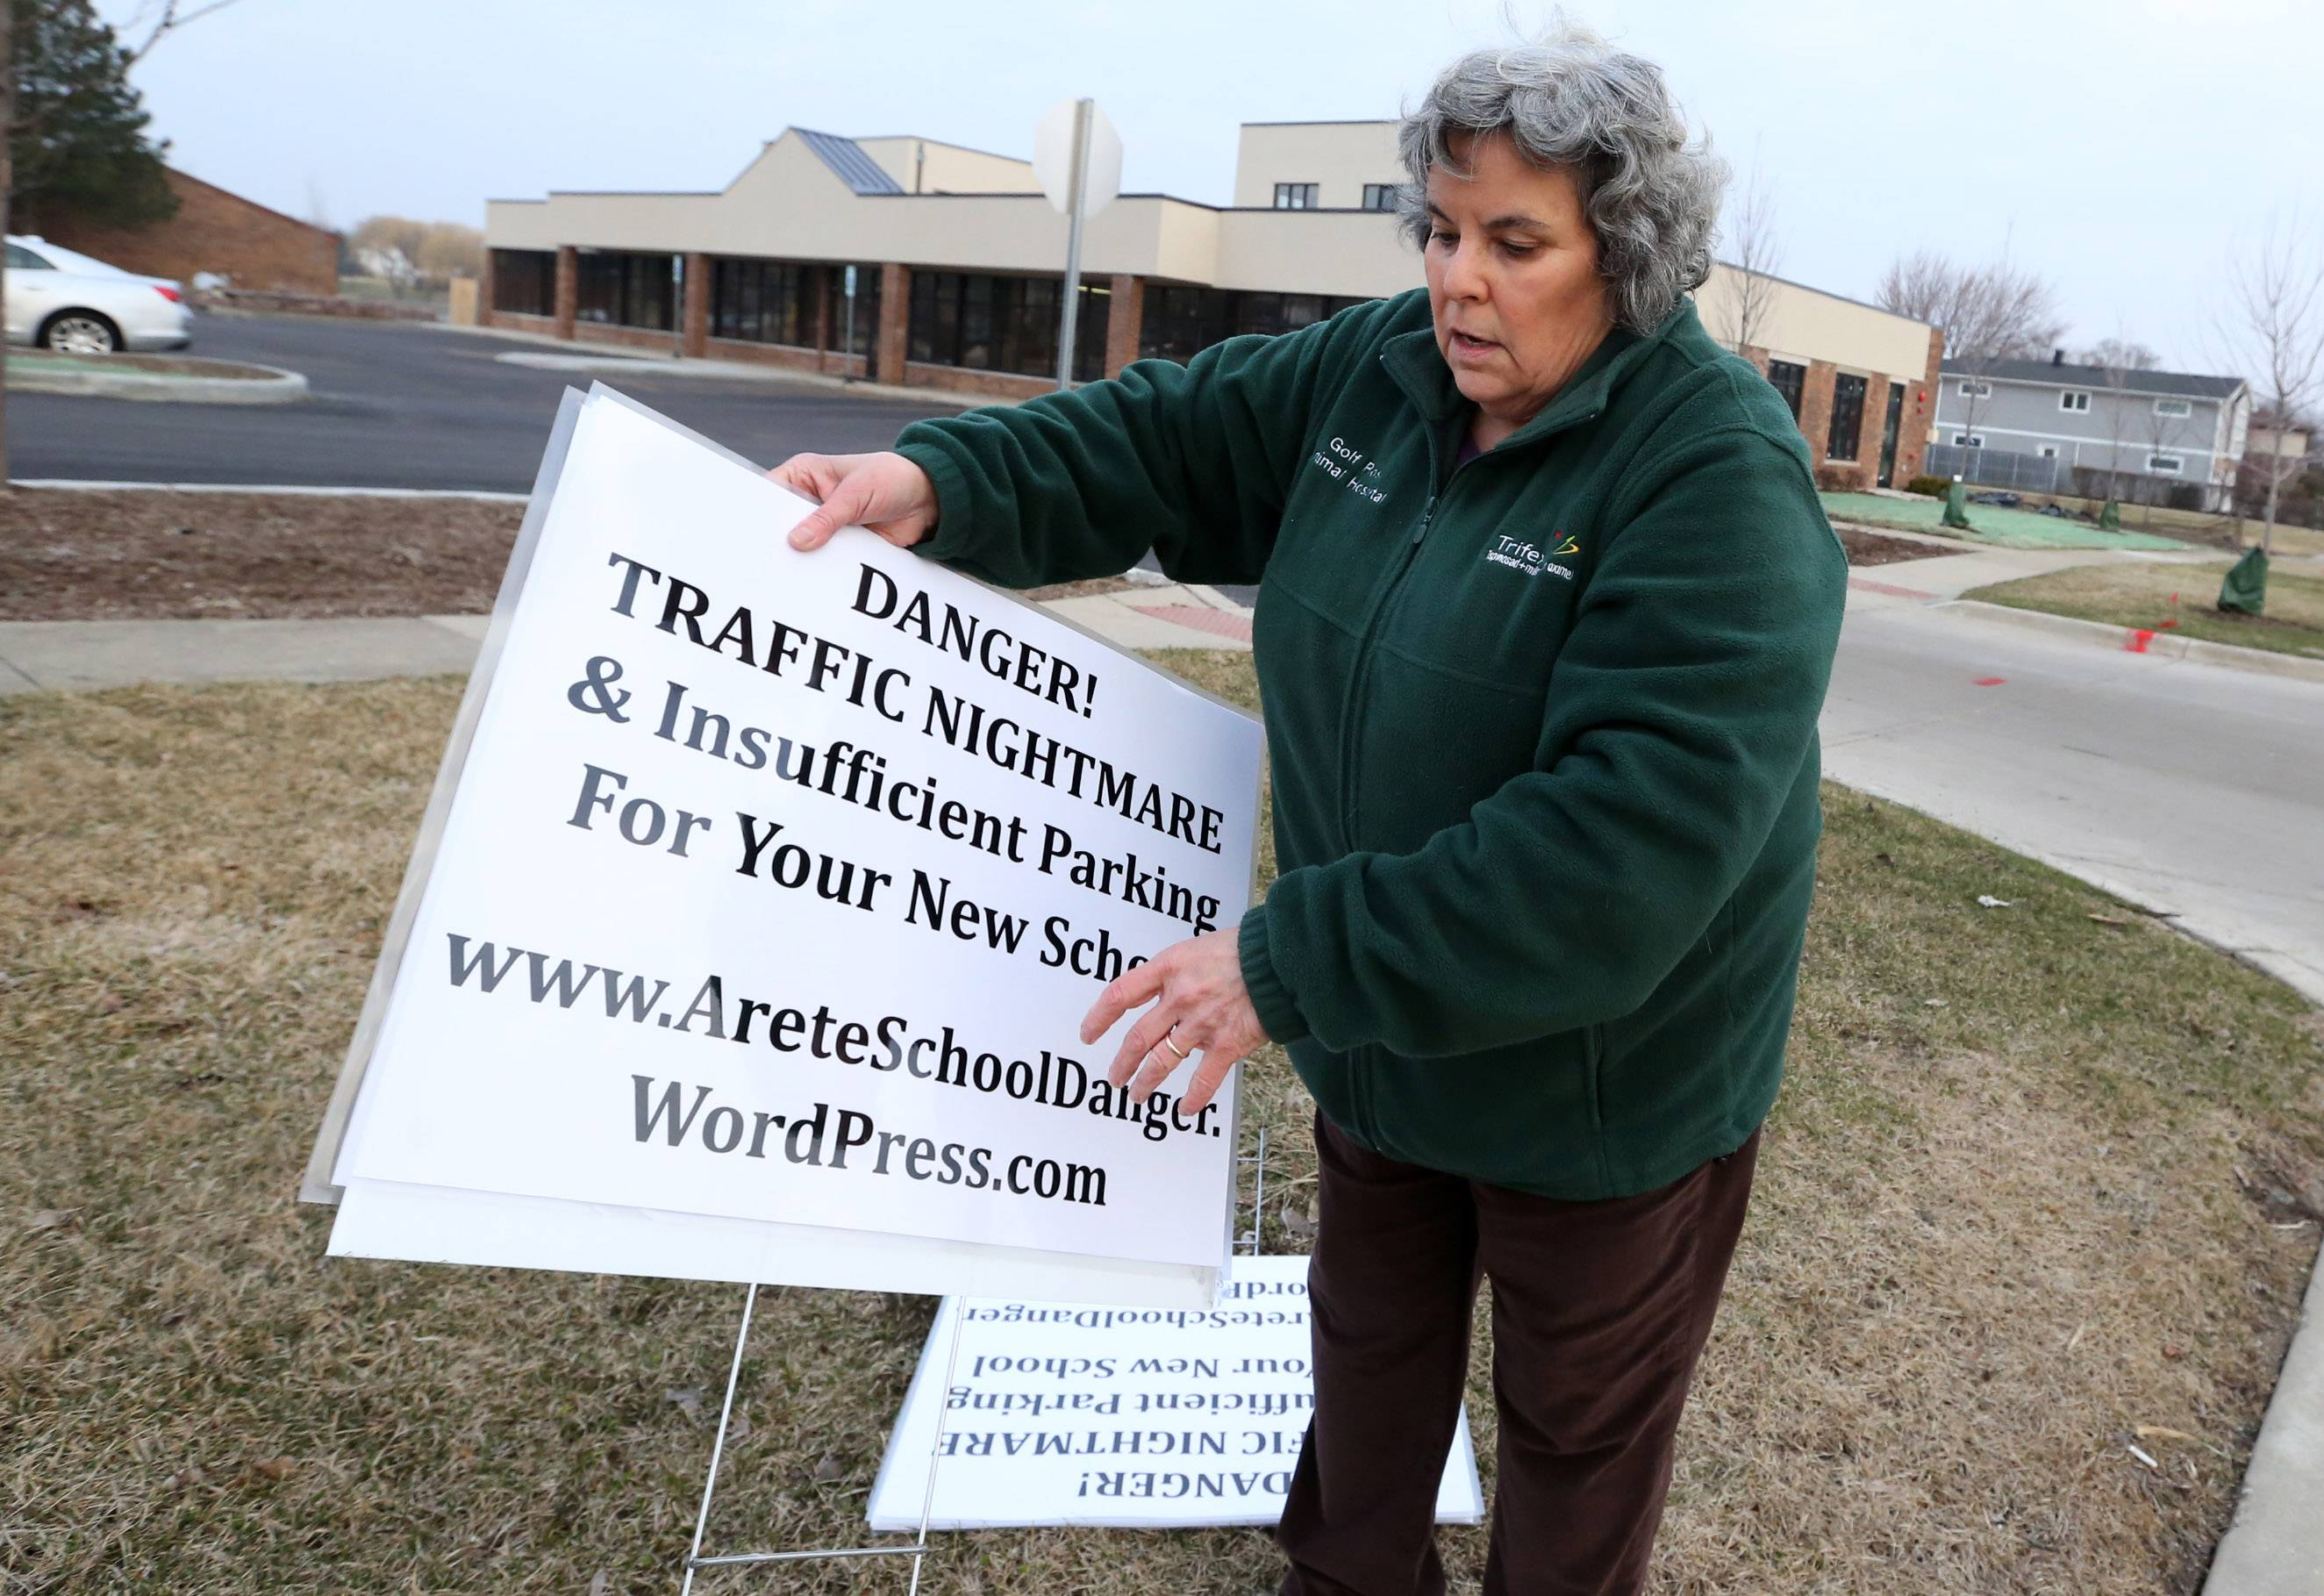 Karen Hailpern of unincorporated Cook County talks Tuesday morning about how she and others are placing signs around Montessori School of North Hoffman and handing out fliers about the owner's plans to add another location at a site picketers don't approve of.